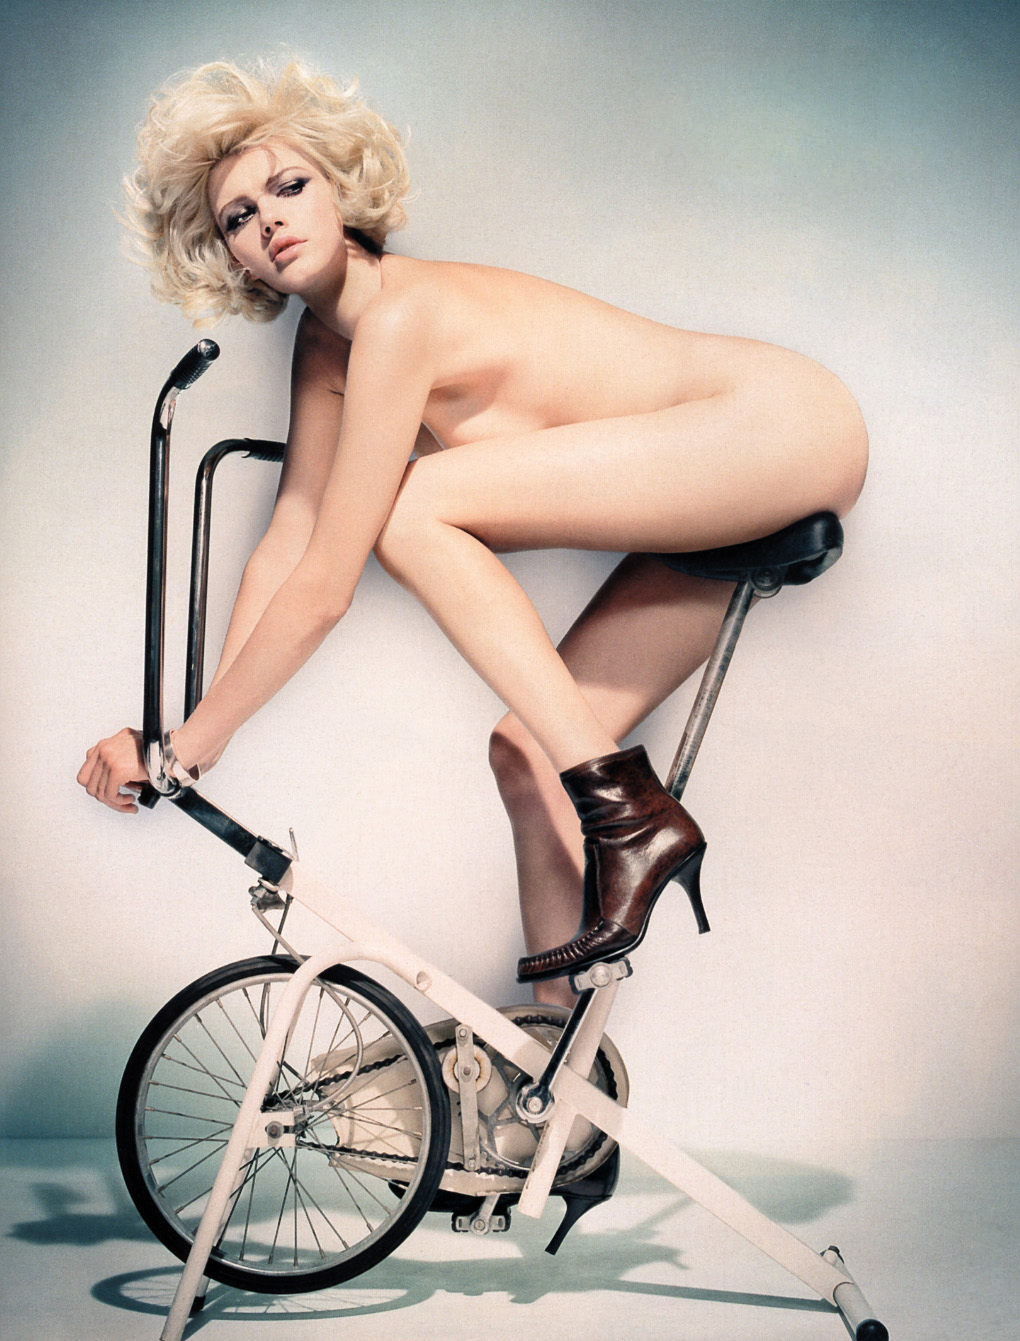 Are not Naked on exercise bike confirm